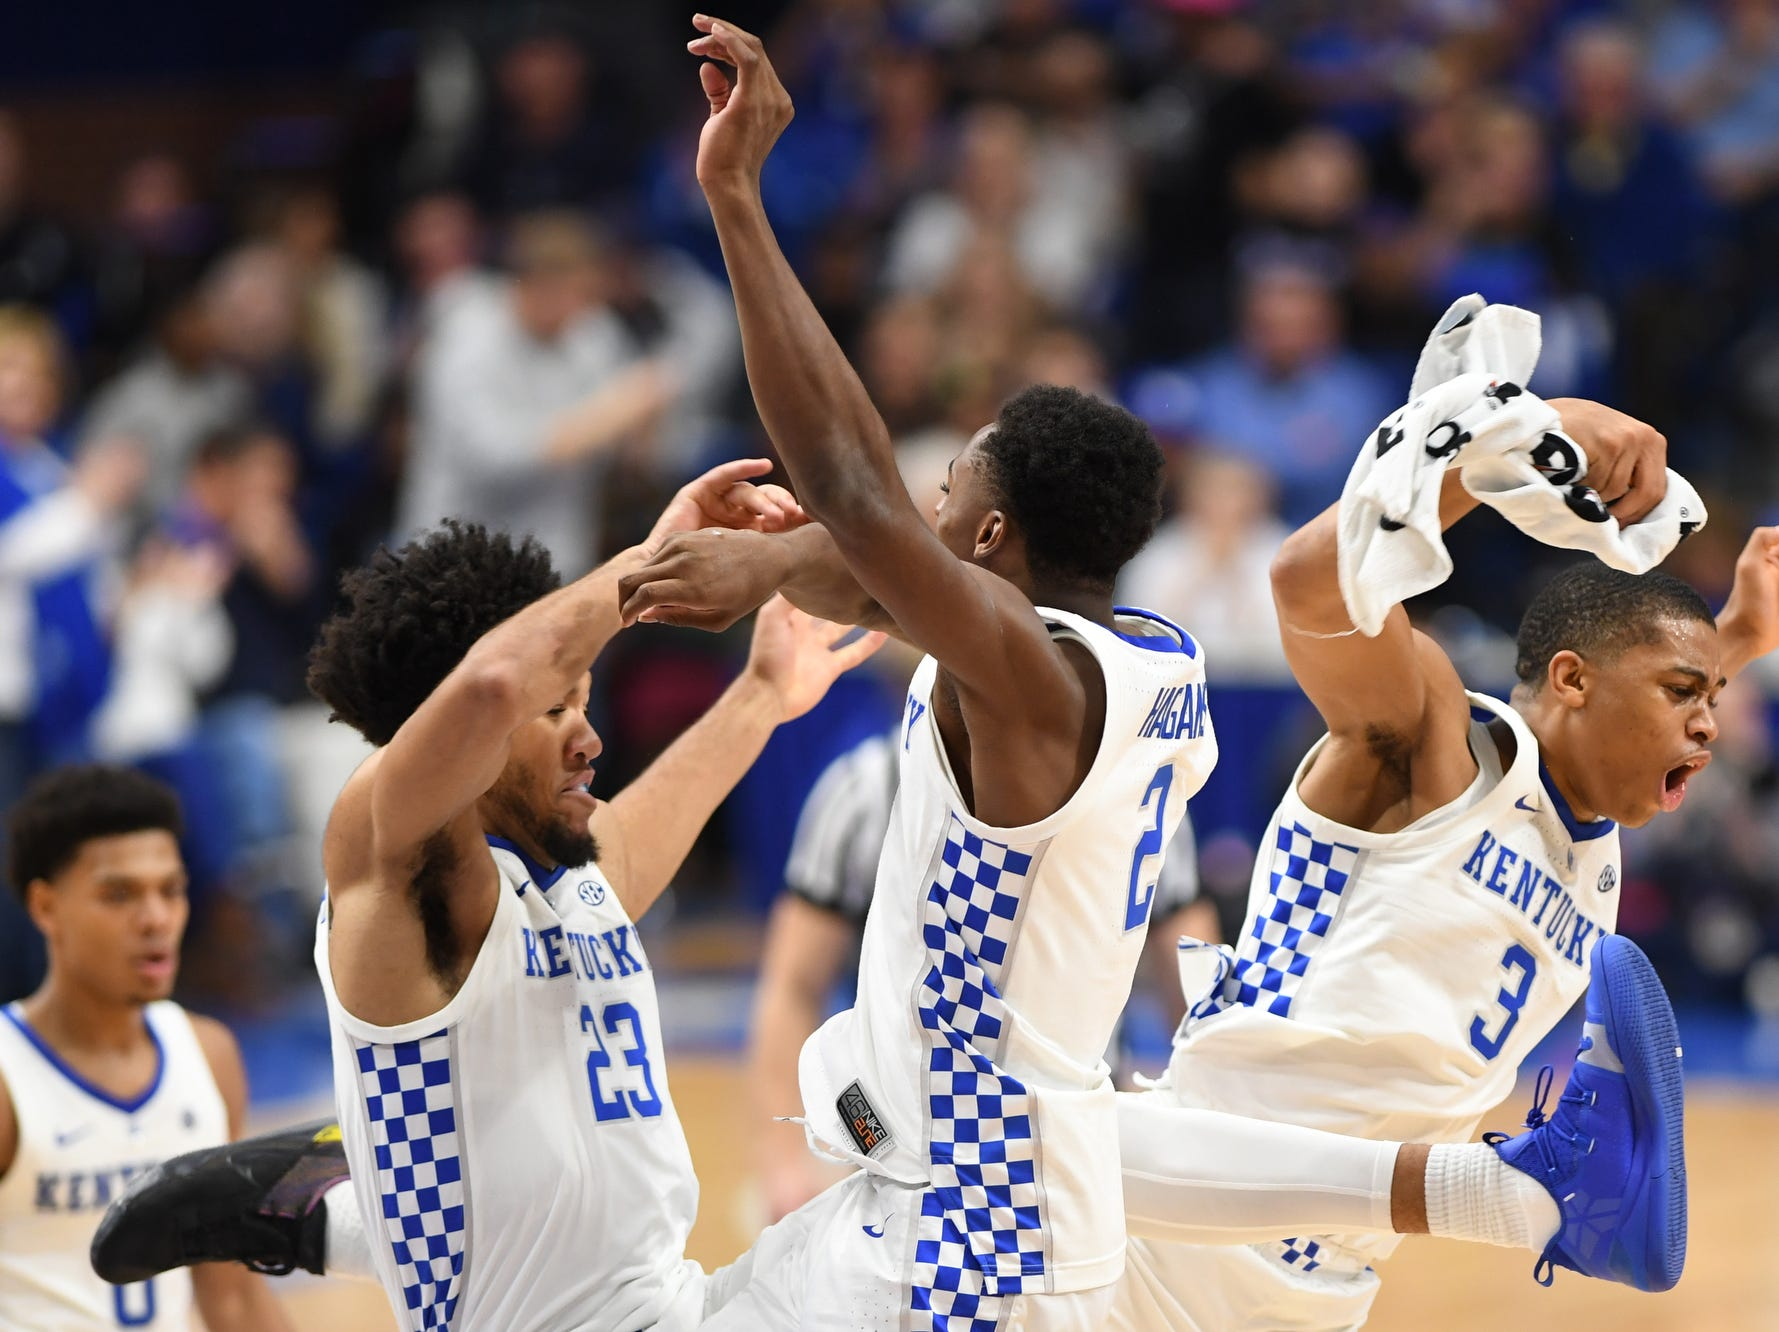 UK players celebrate during the University of Kentucky mens basketball game against Southern Illinois at Rupp Arena in Lexington, Kentucky on Friday, November 9, 2018.